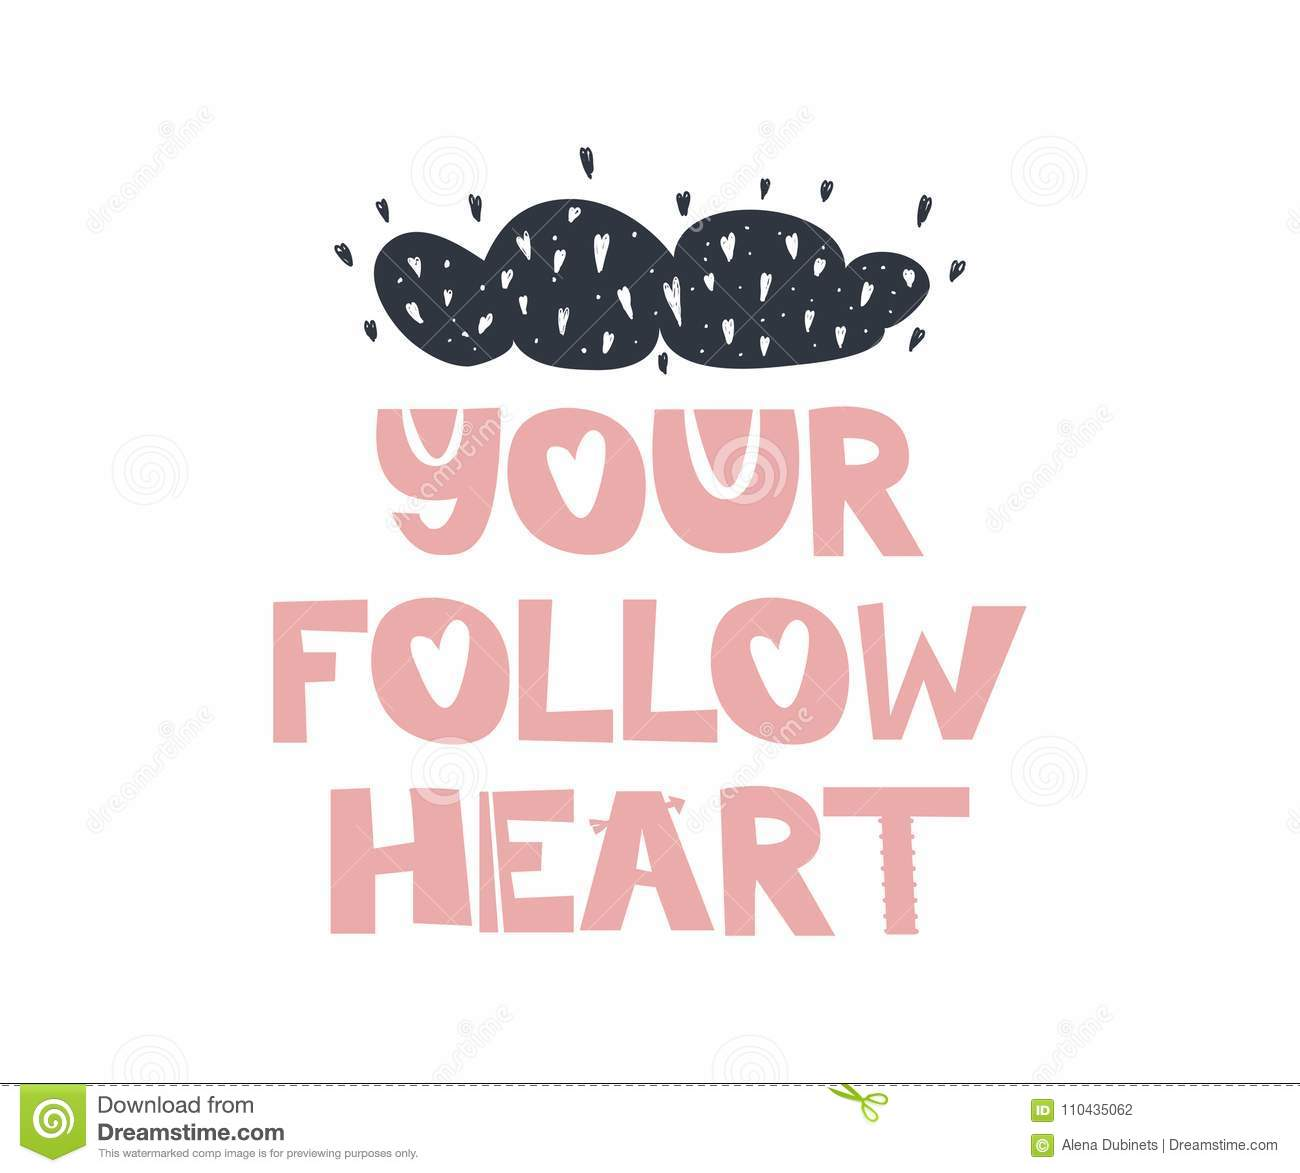 Your follow heart quote